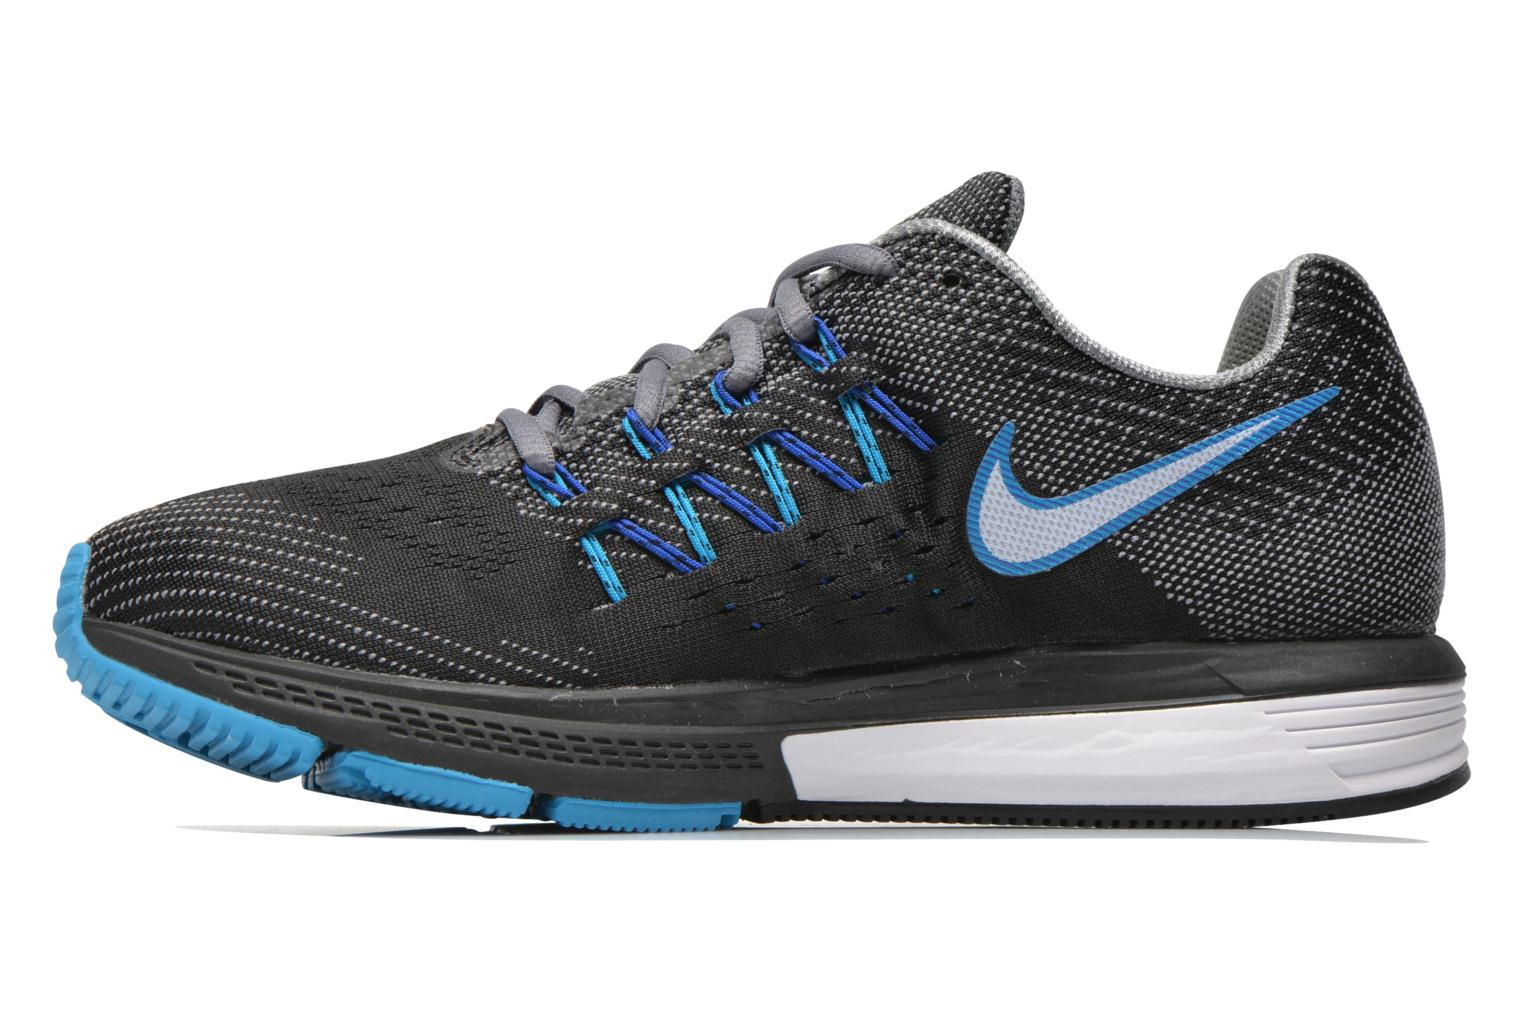 Nike Air Zoom Vomero 10 Cool Grey/White-Black-Bl Lgn